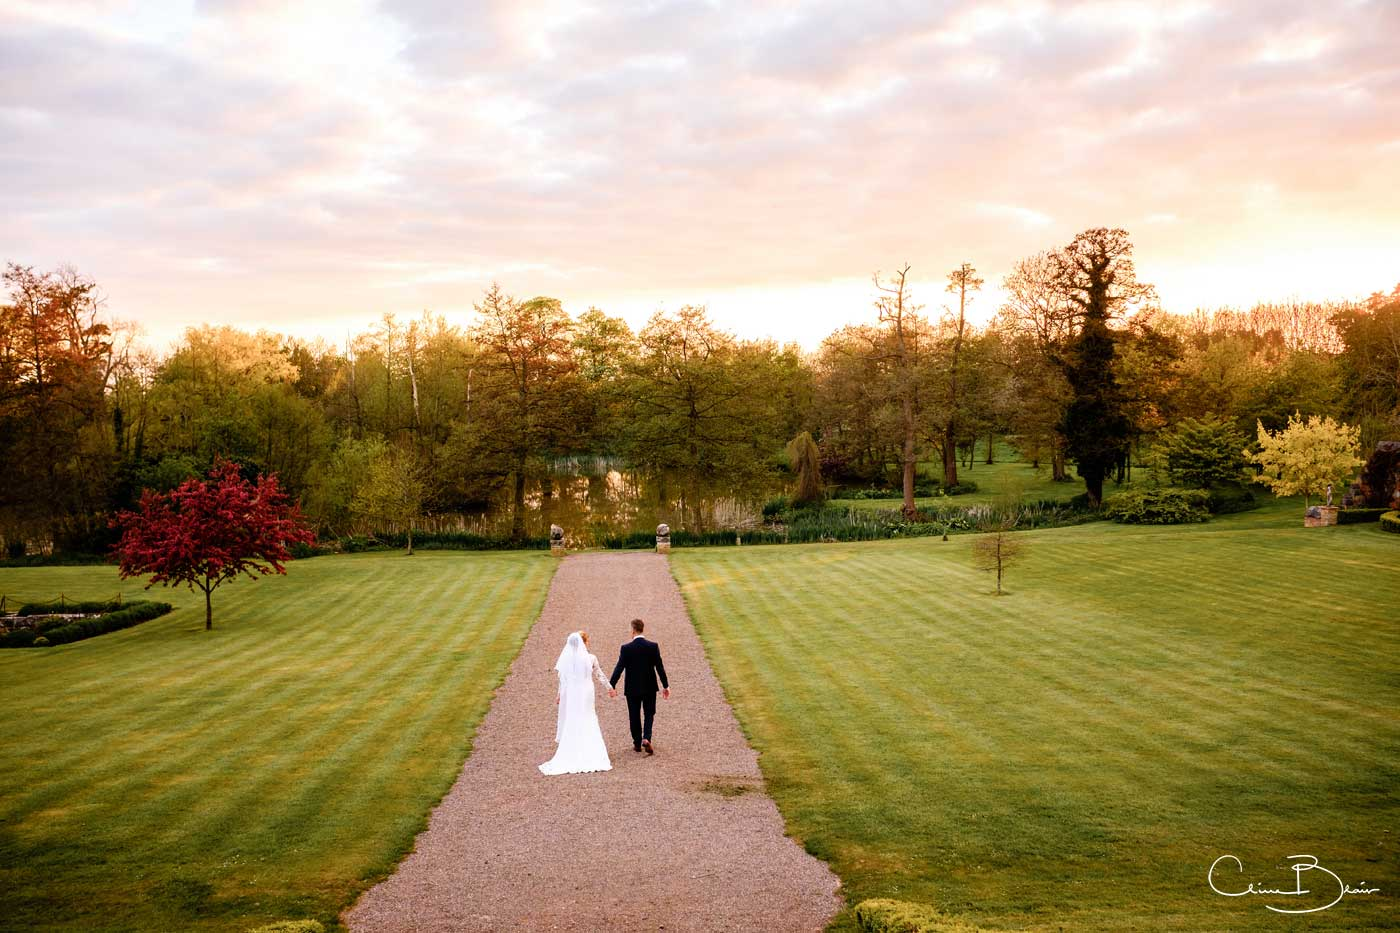 Bride and groom walking together in the grounds of Grafton Manor